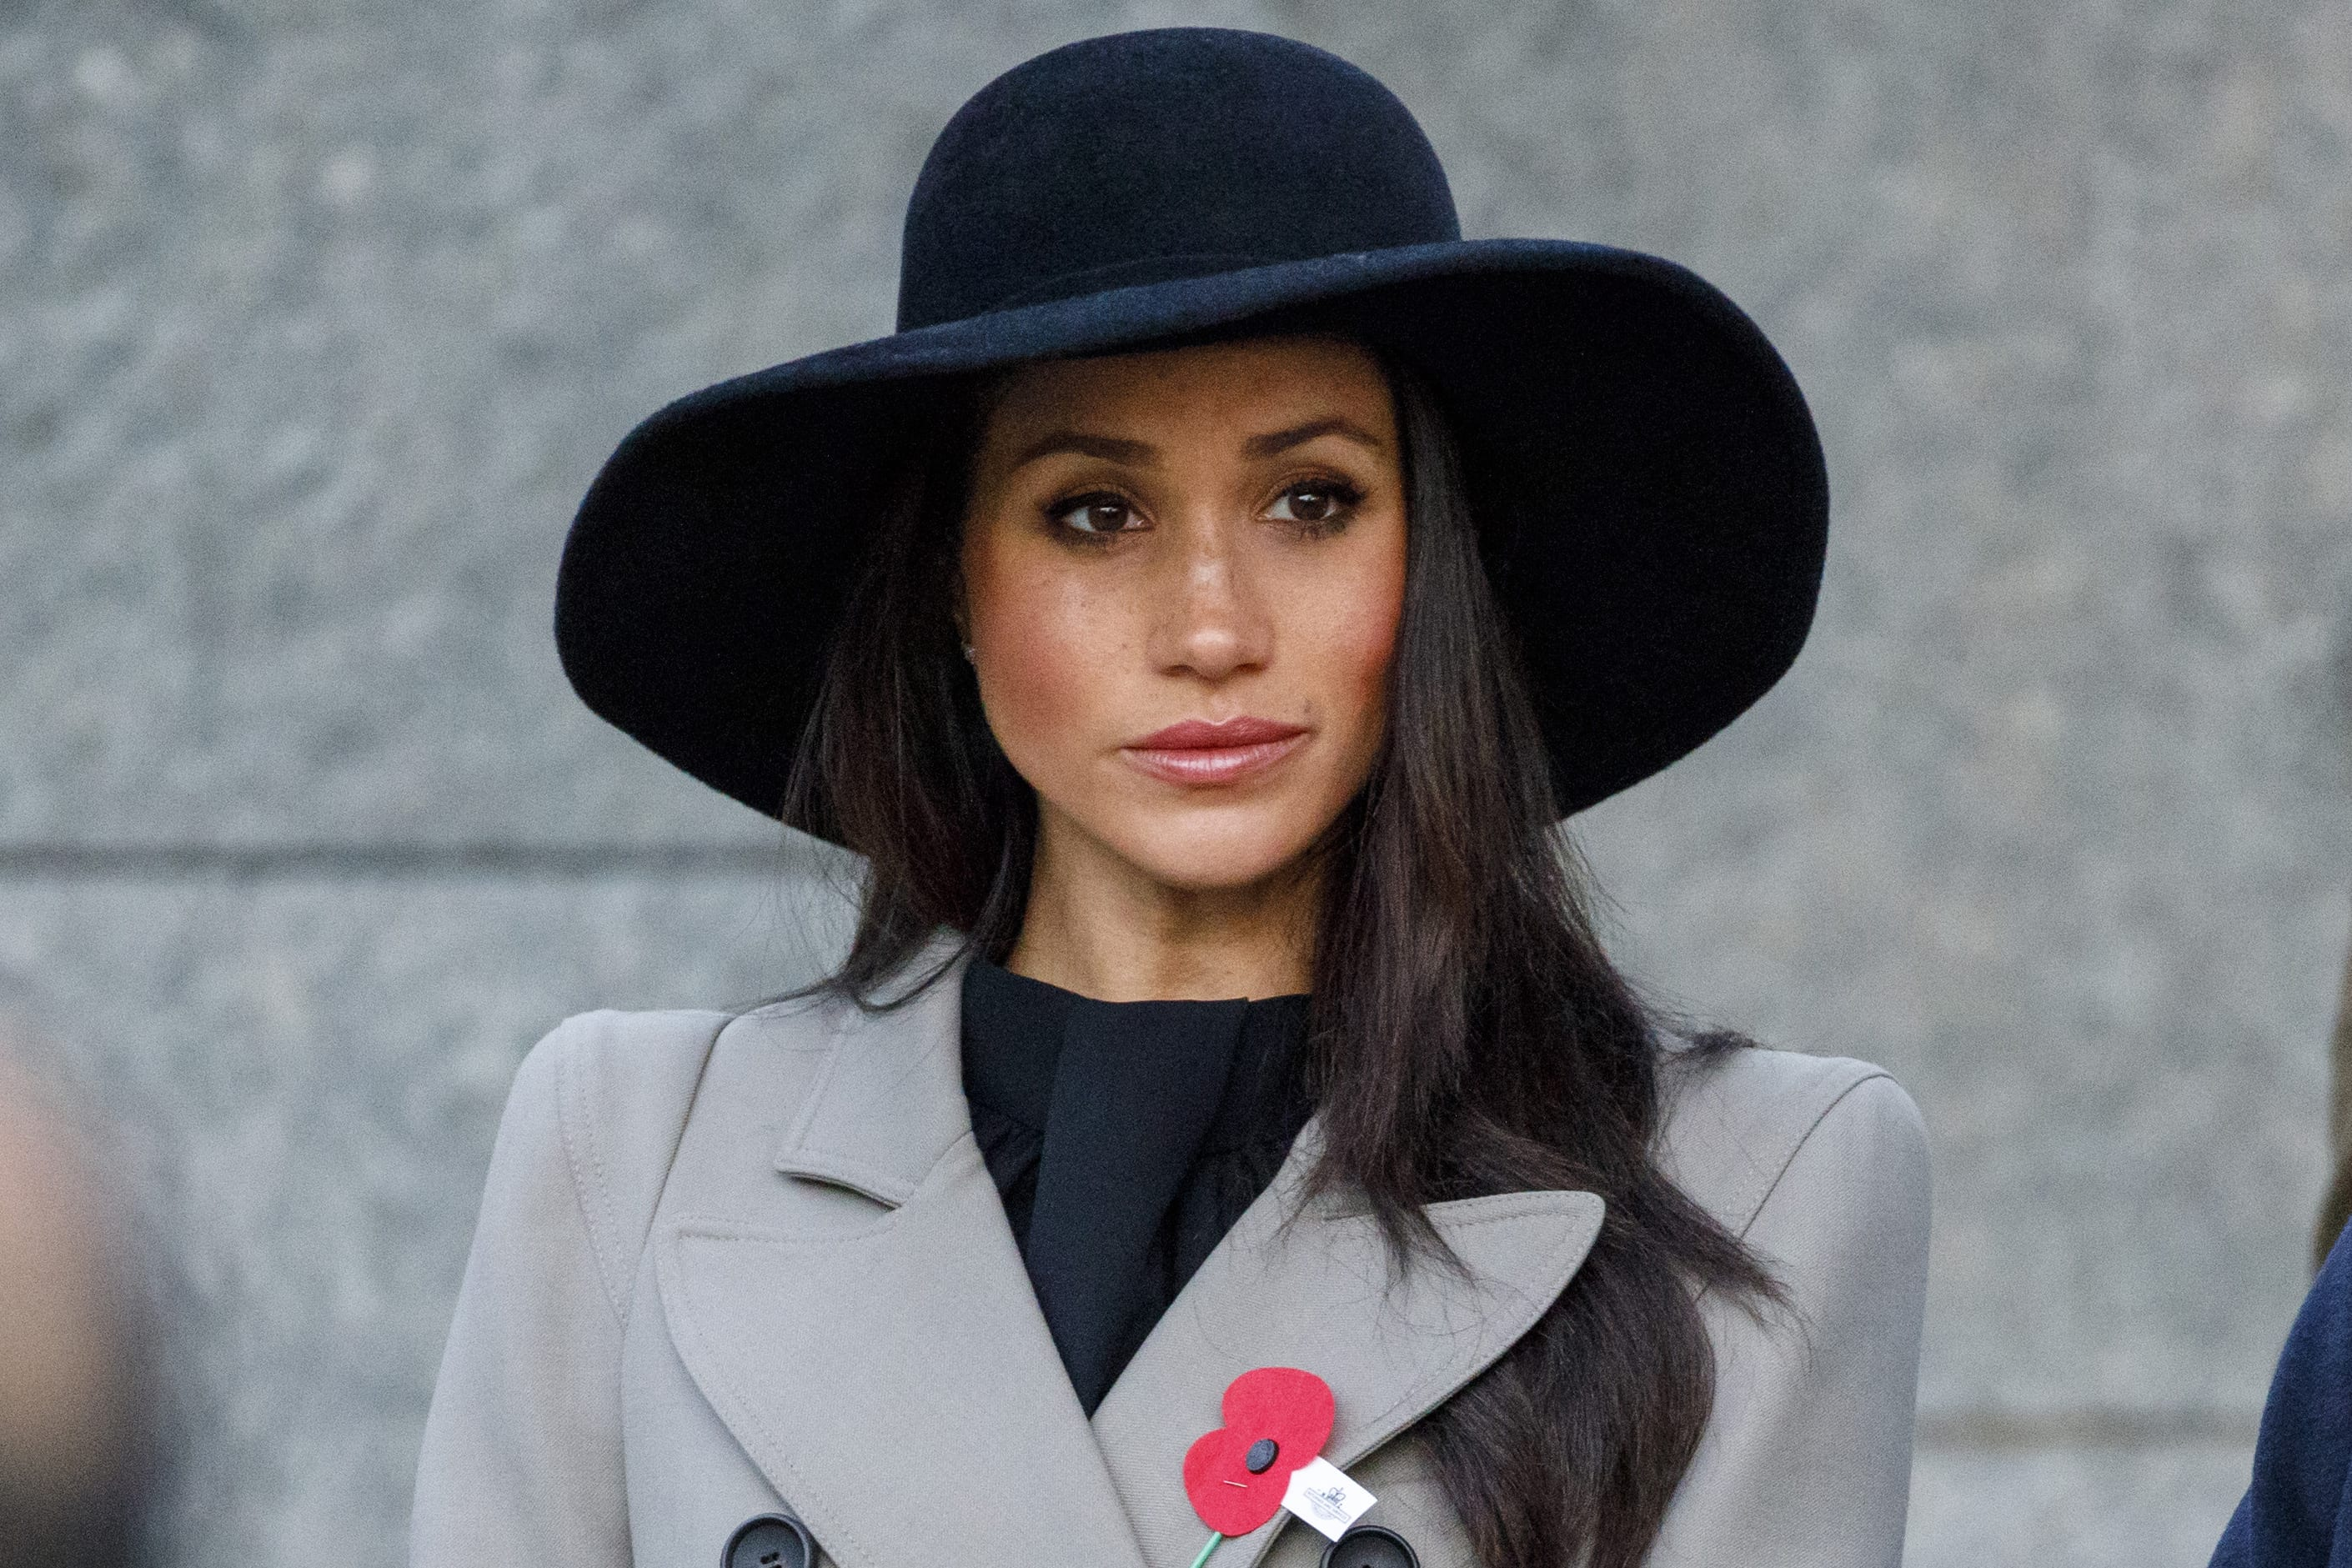 New Court Documents Claim Royal Aides Helped Meghan Markle Pen Letter to Her Father